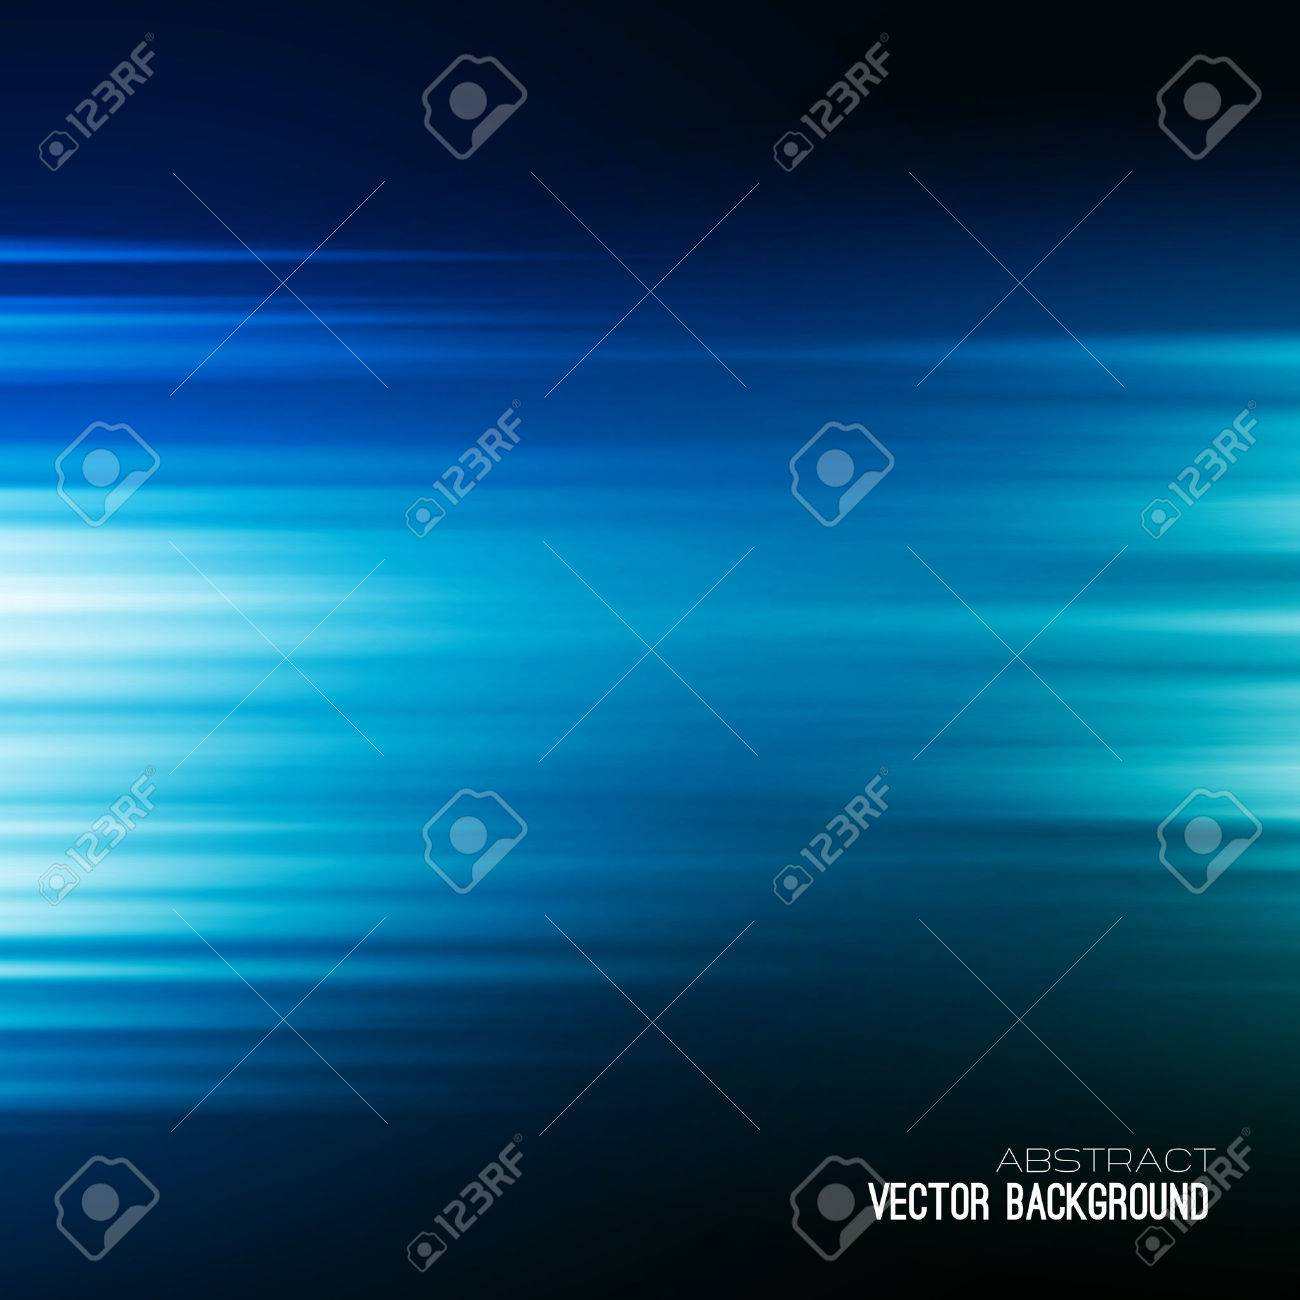 Blue Abstract vector backgrounds. Rays of light. - 41642308